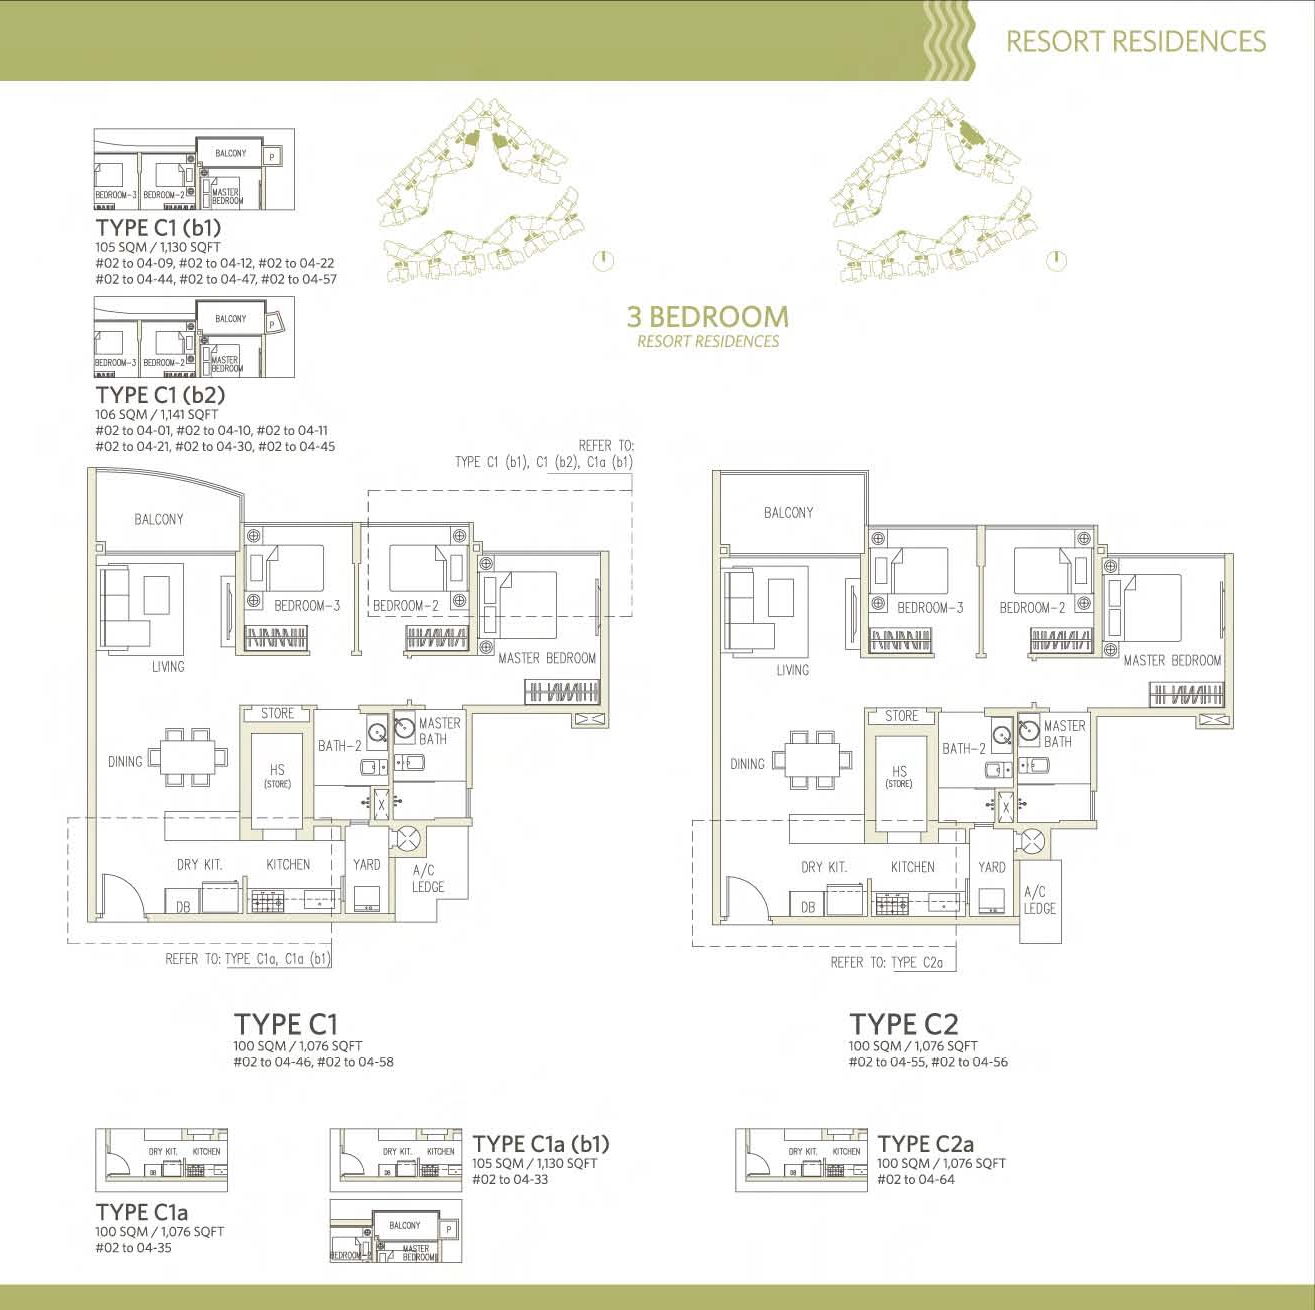 Canberra Residences 3 Bedroom Floor Plans Type C1, C2, C1(b1), C1(b2), C1a, C1b(b1), C2a